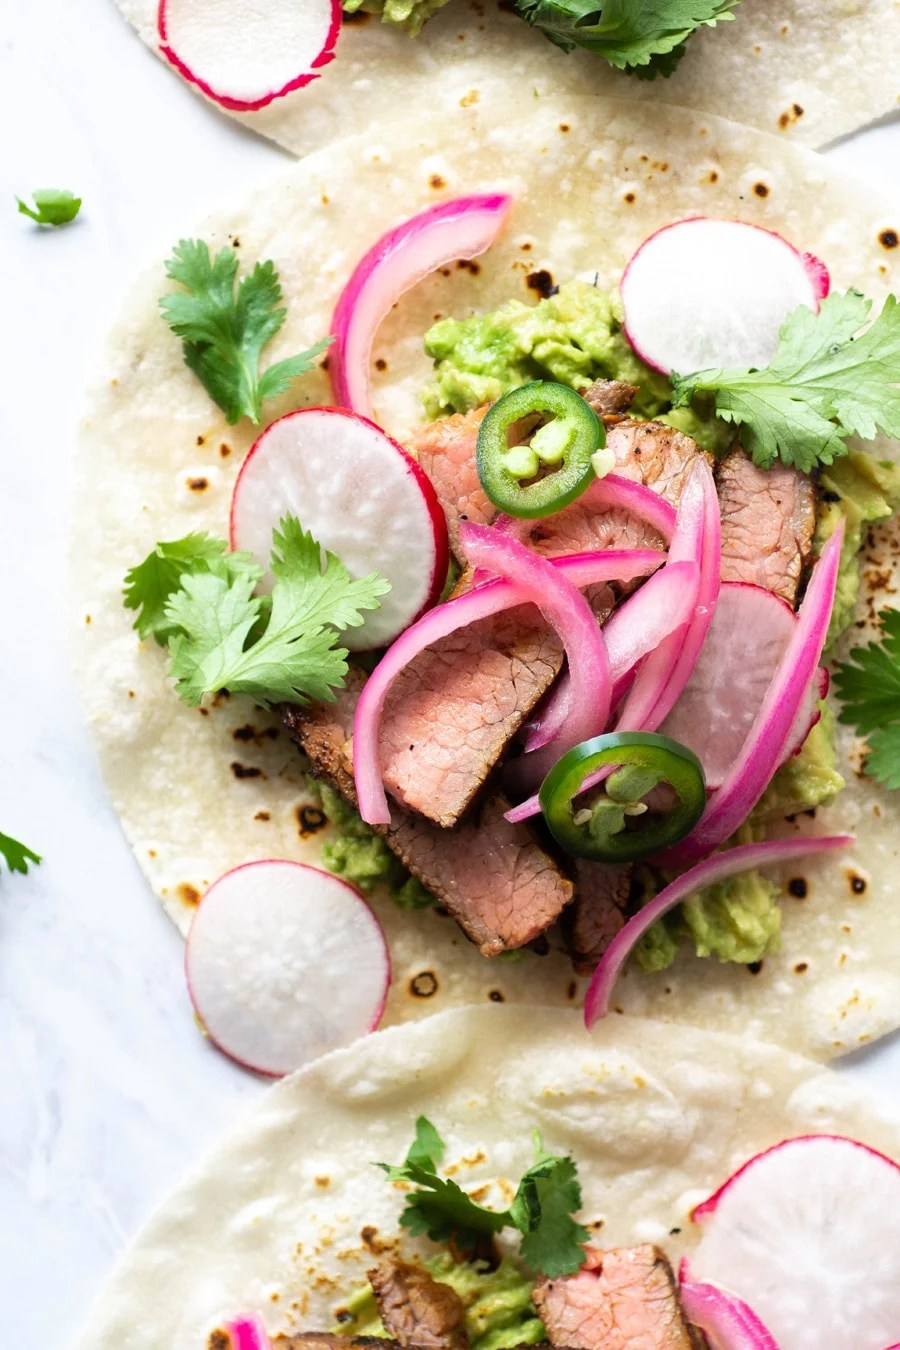 Close up shot of a steak taco on a white background with cilantro, thinly sliced jalapeno, pickled red onions